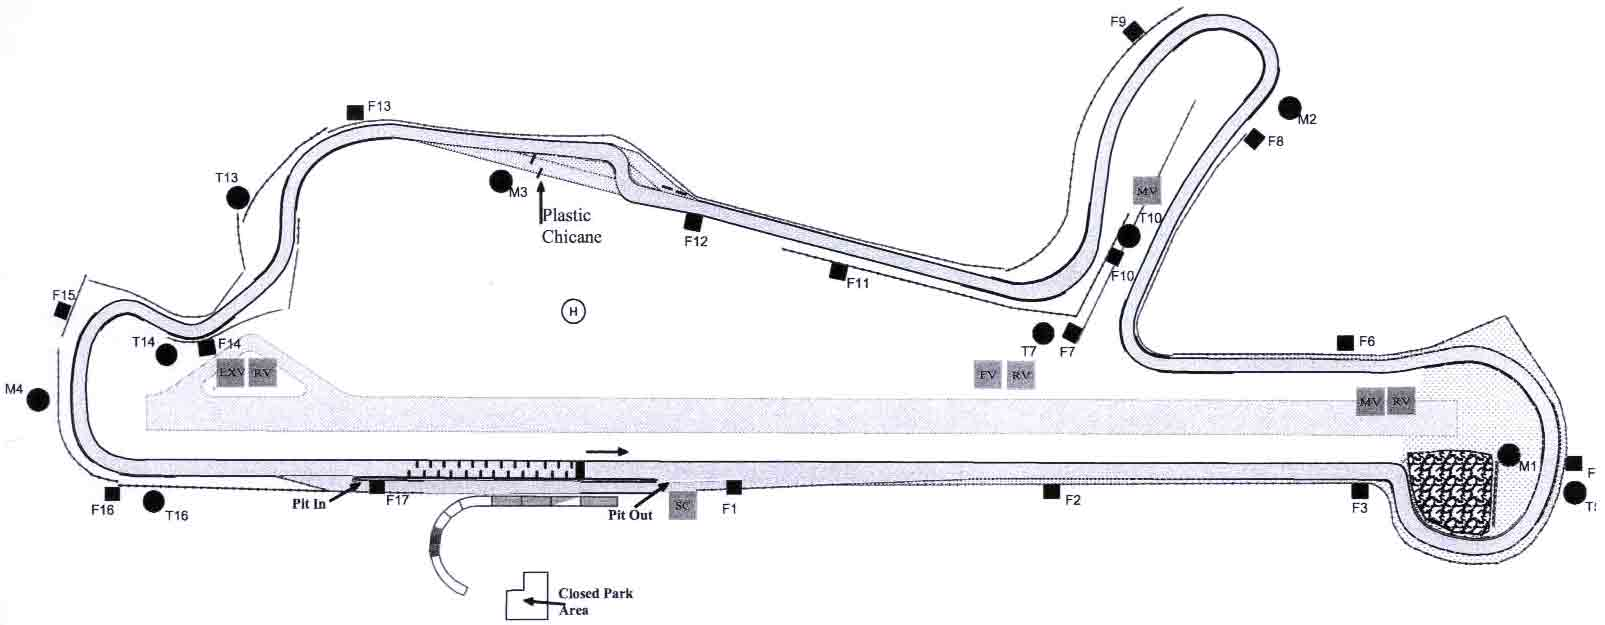 Figure 2. Circuito de Velocidade Vasco Sameiro (also known as Circuit of Braga).